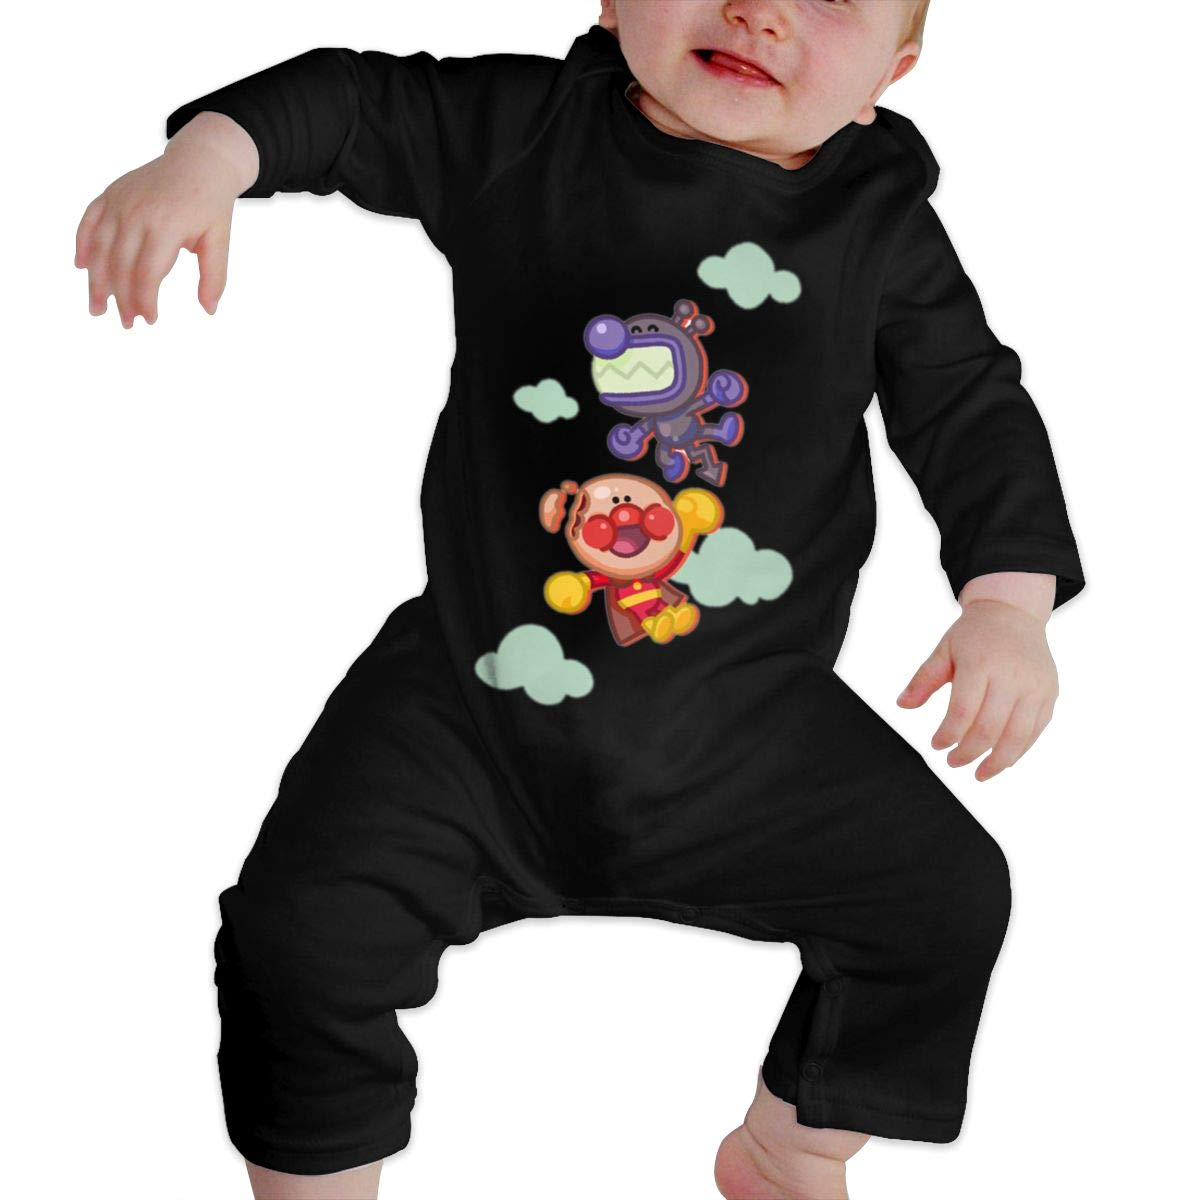 SININIDR Newborn Jumpsuit Infant Baby Girls Anpanman Long-Sleeve Bodysuit Playsuit Outfits Clothes Black